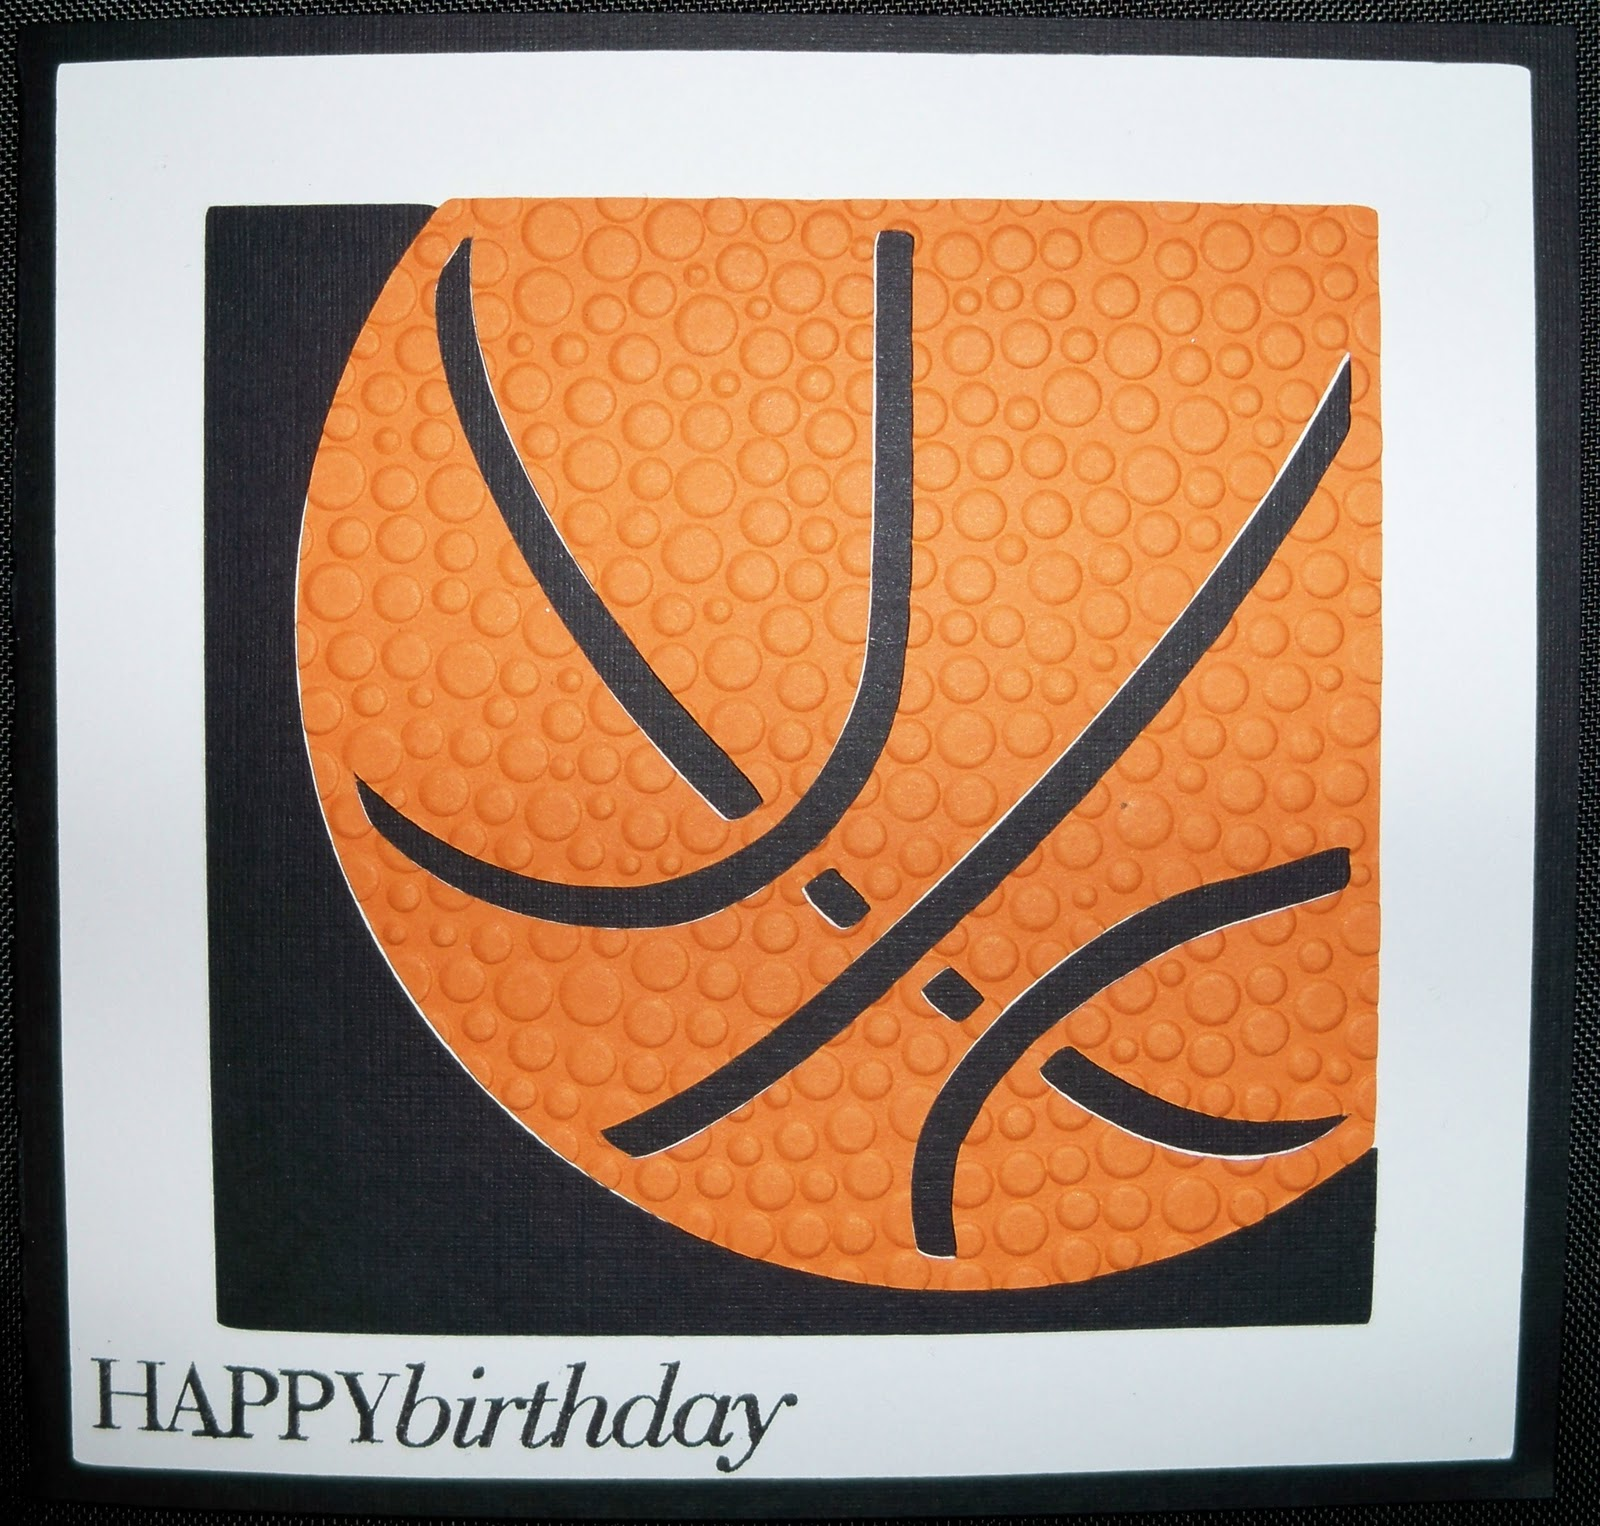 Gloras crafts simple basketball birthday card simple basketball birthday card bookmarktalkfo Image collections